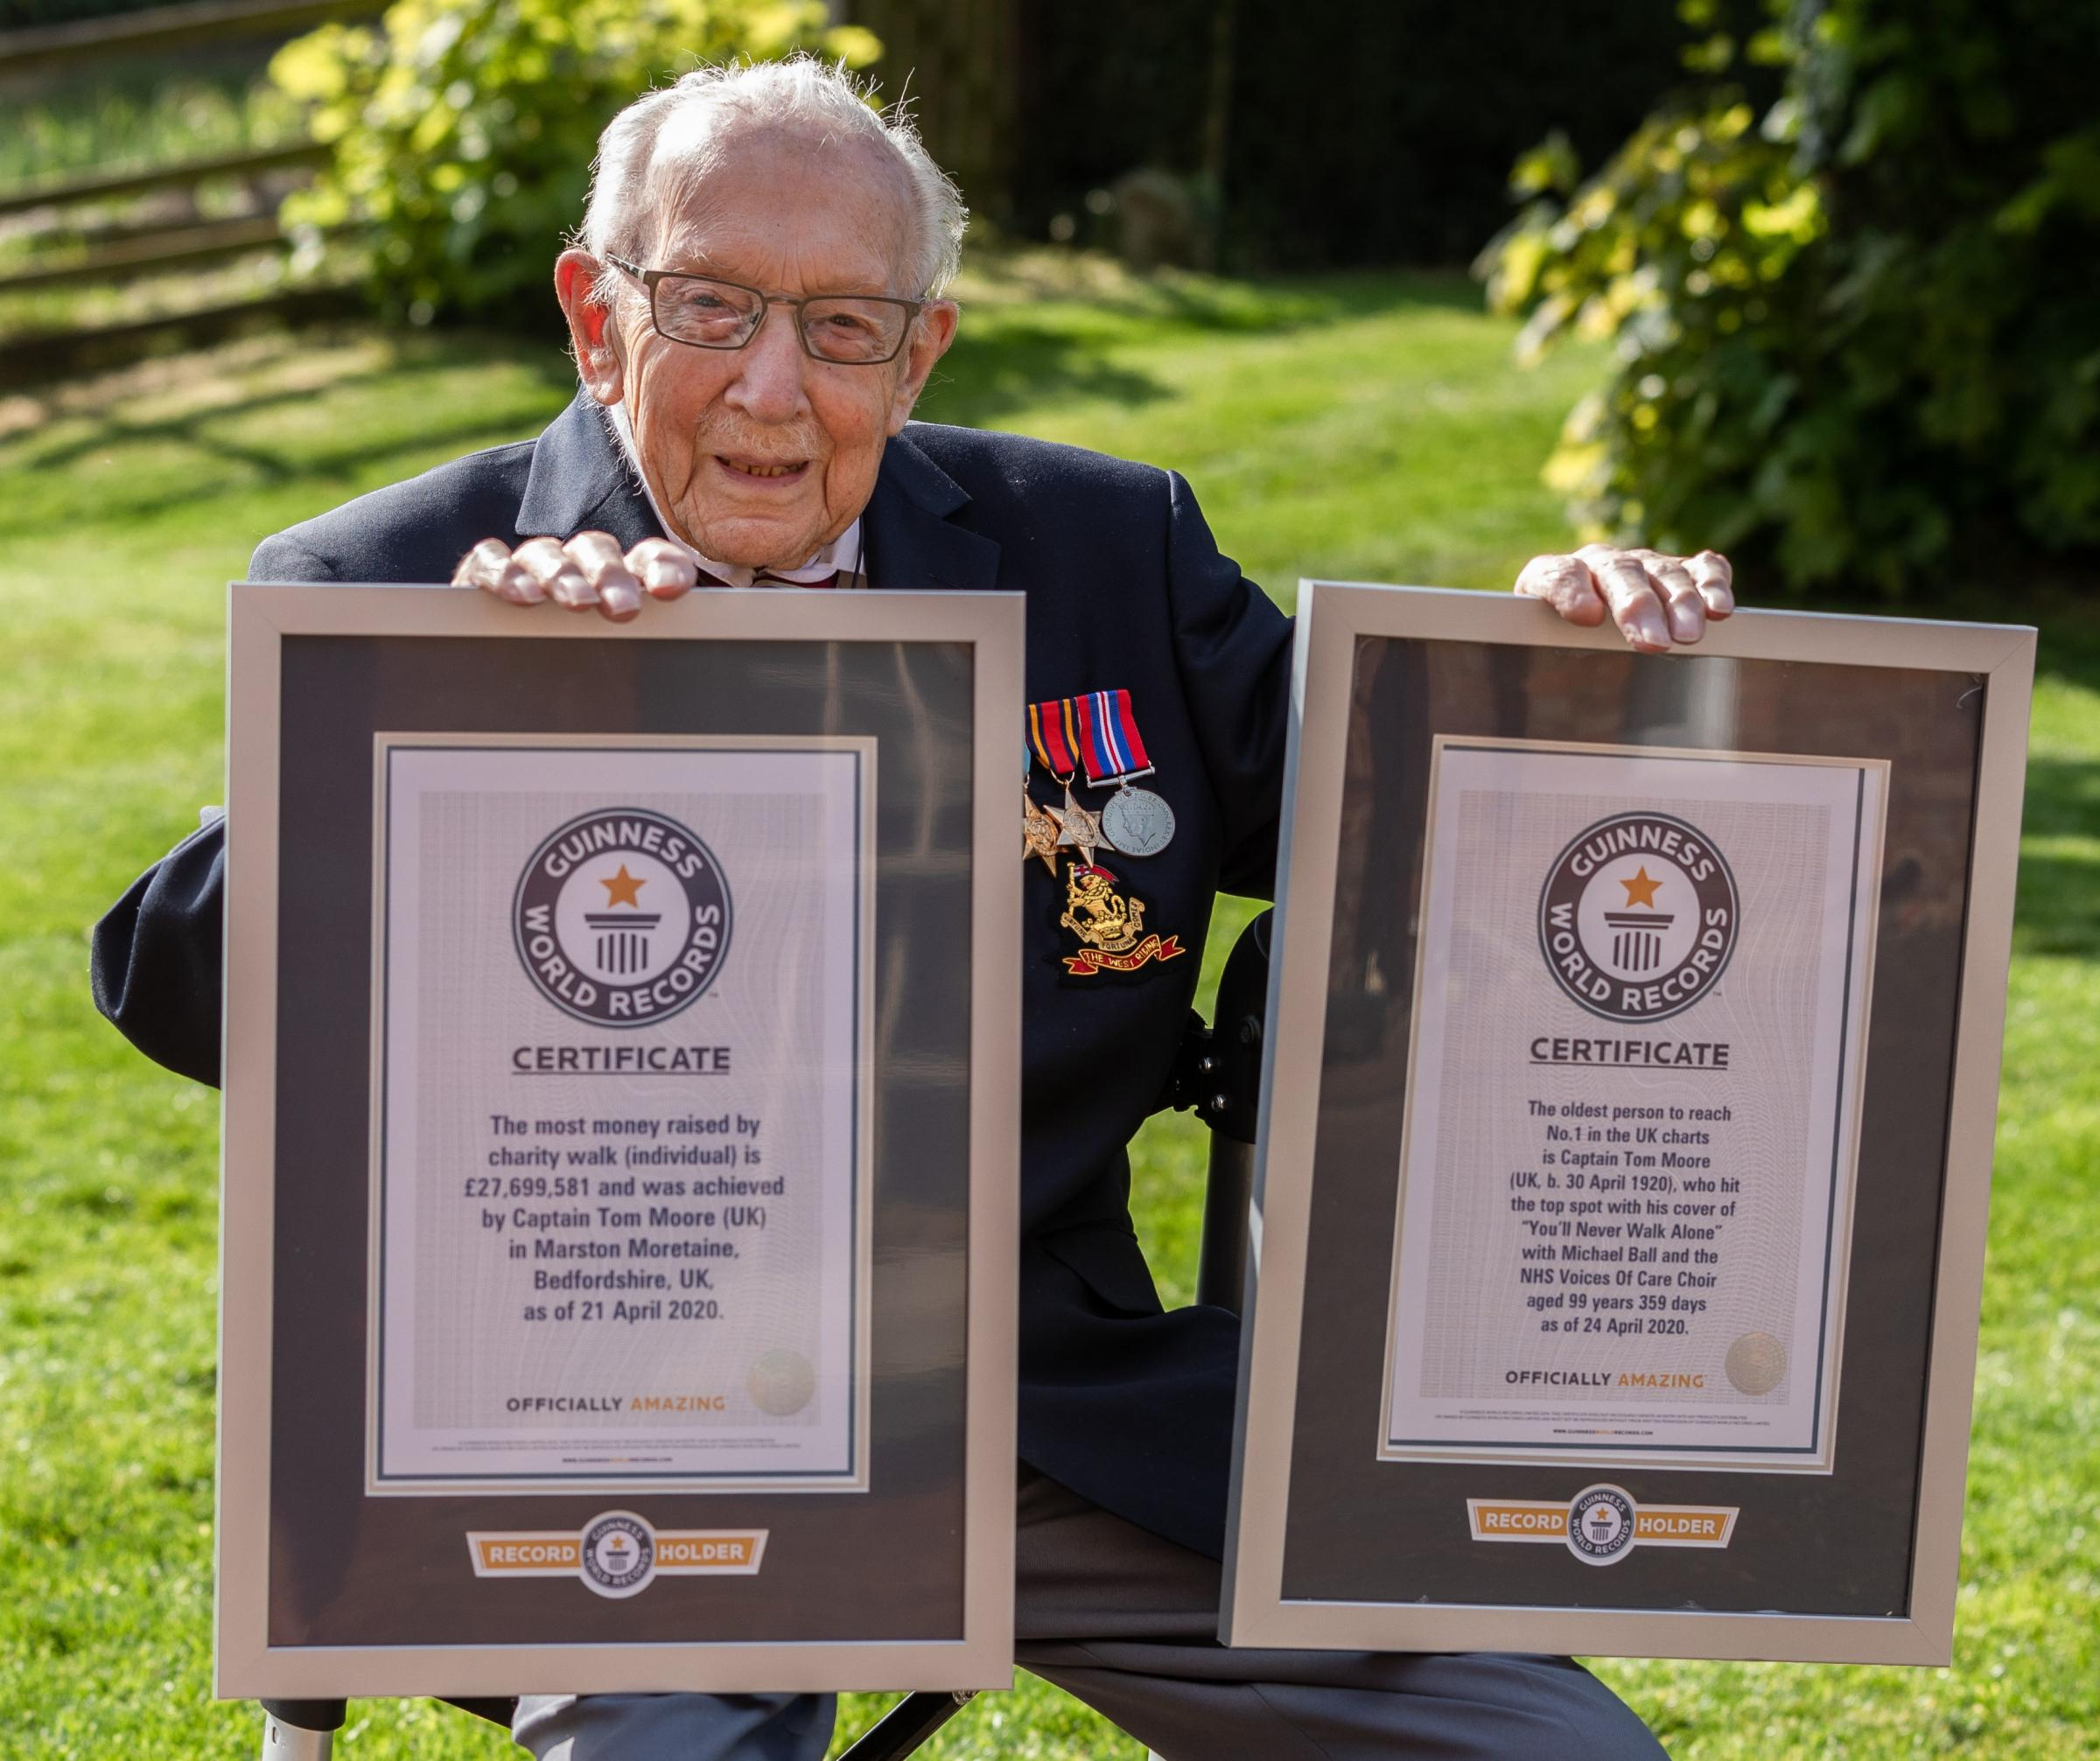 30 world records to try to beat at home - like Captain Sir Tom